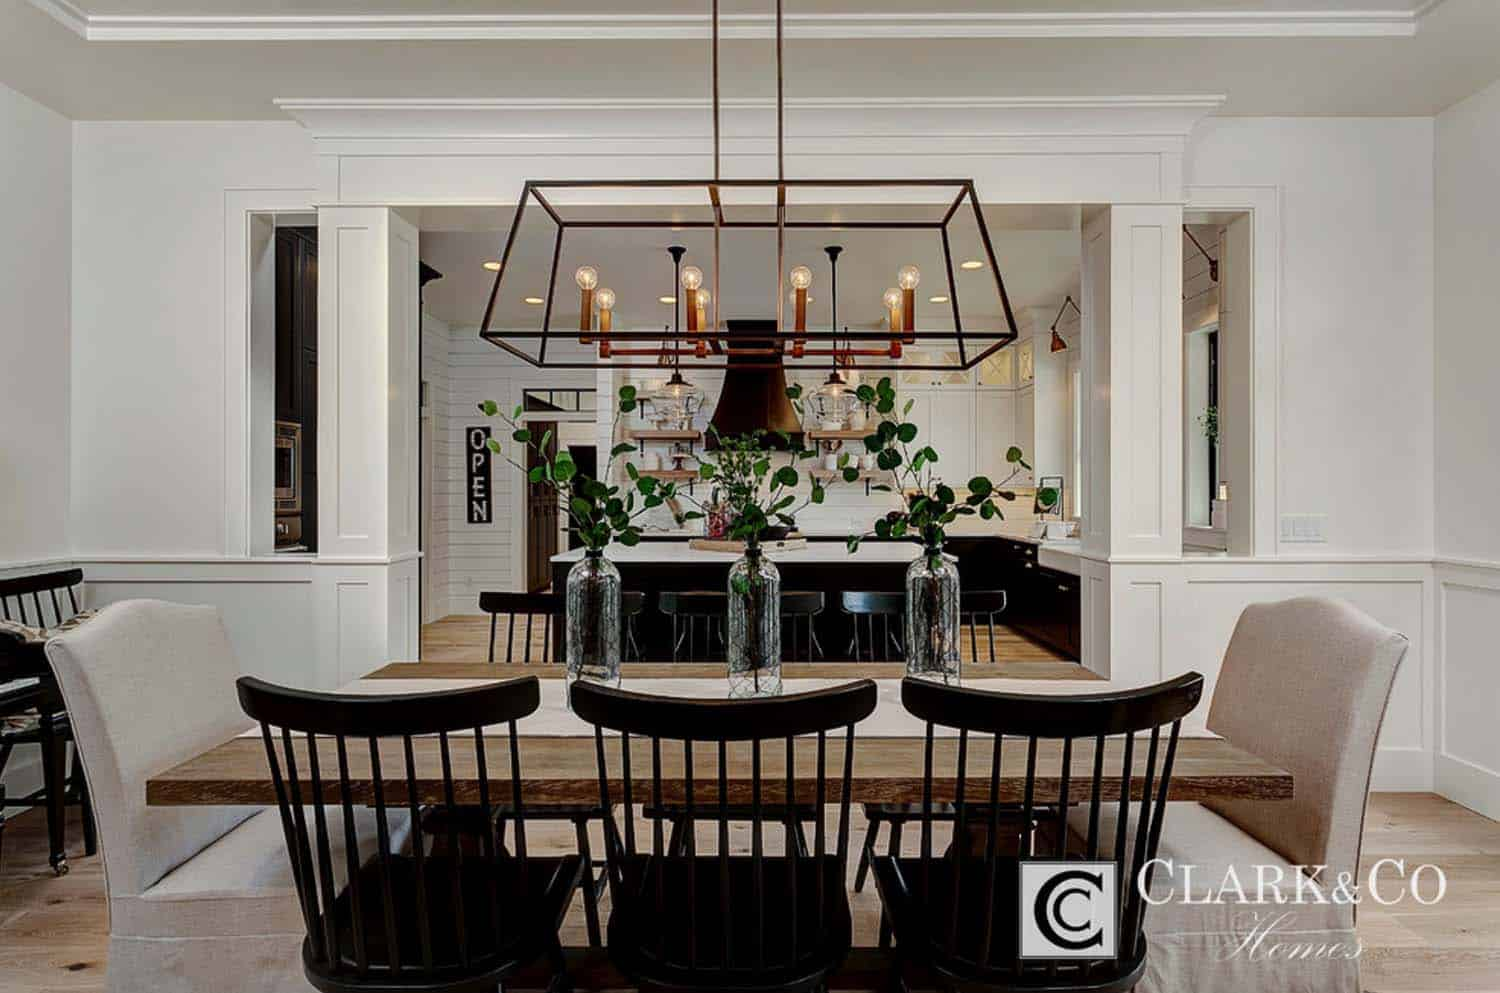 Modern Farmhouse Style-Clark and Co Homes-33-1 Kindesign